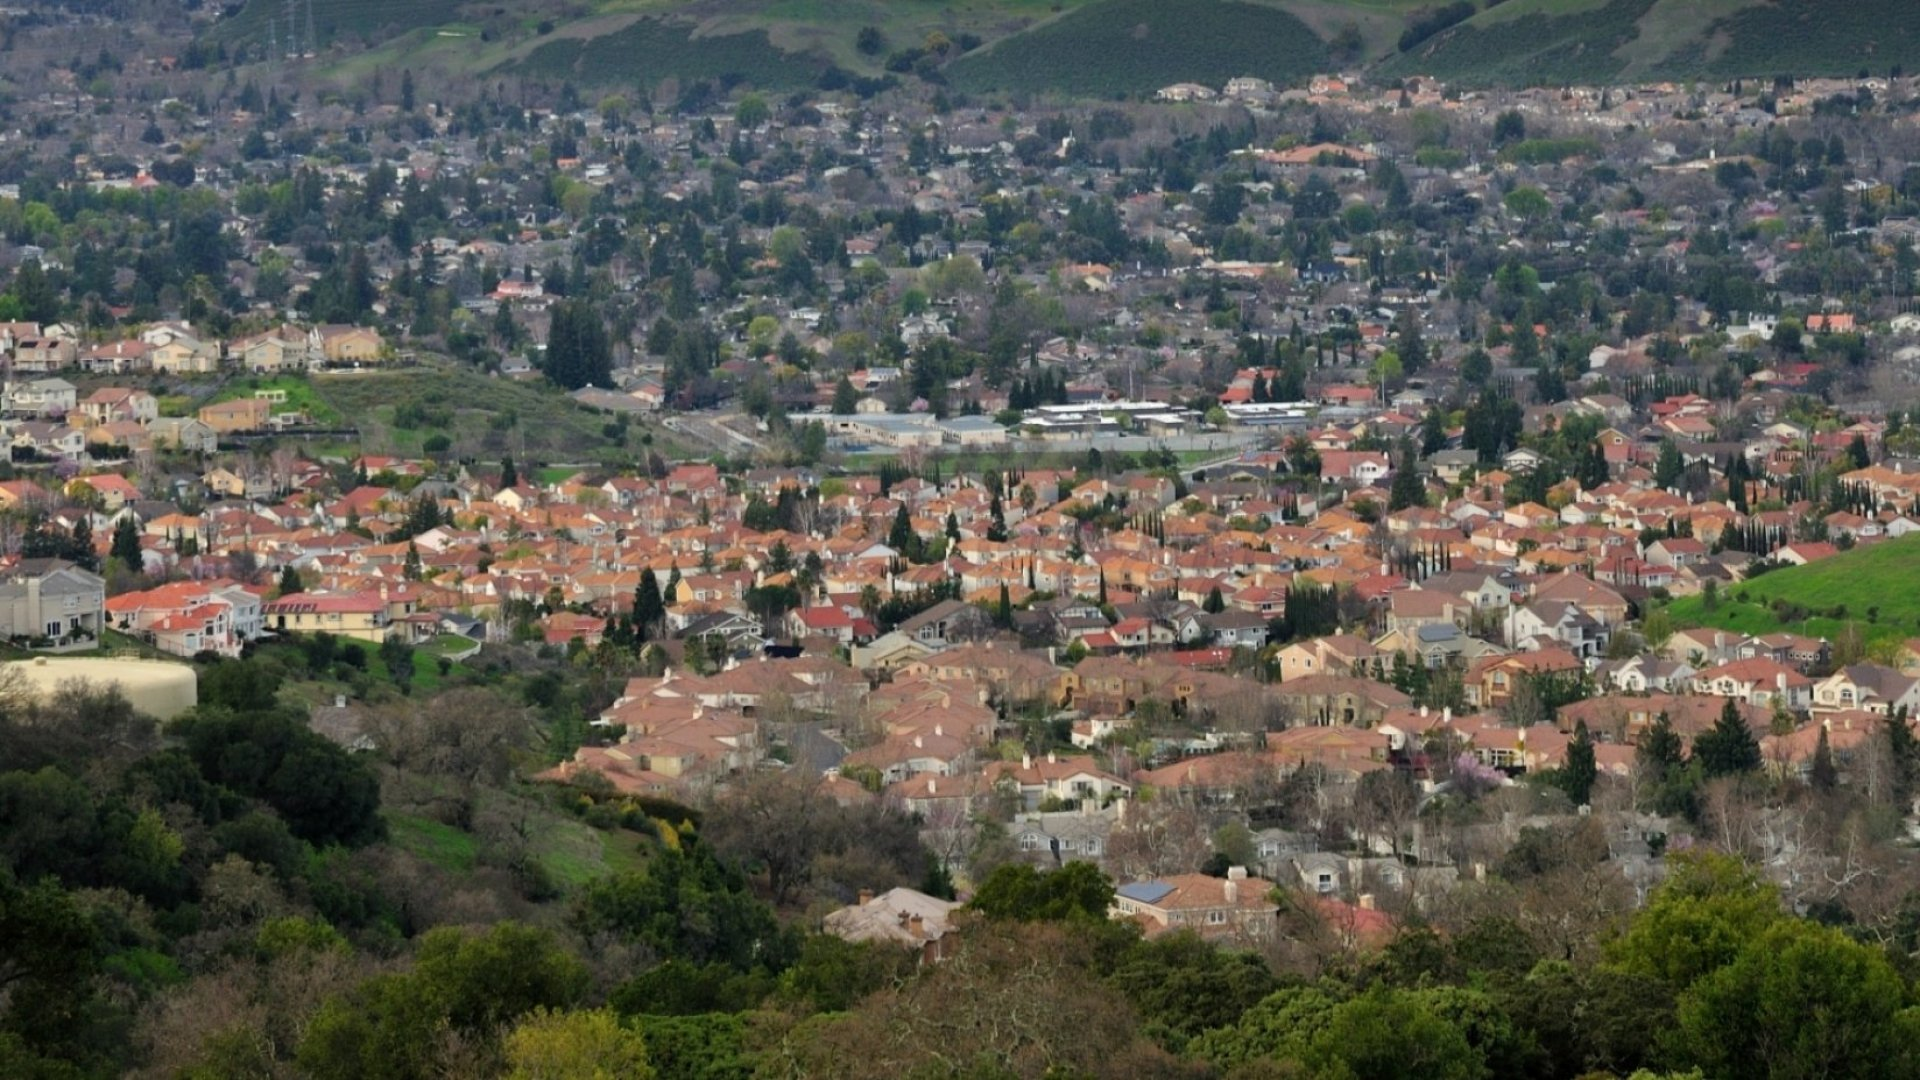 If You Make $250,000, You Could Qualify for Subsidized Housing in Silicon Valley